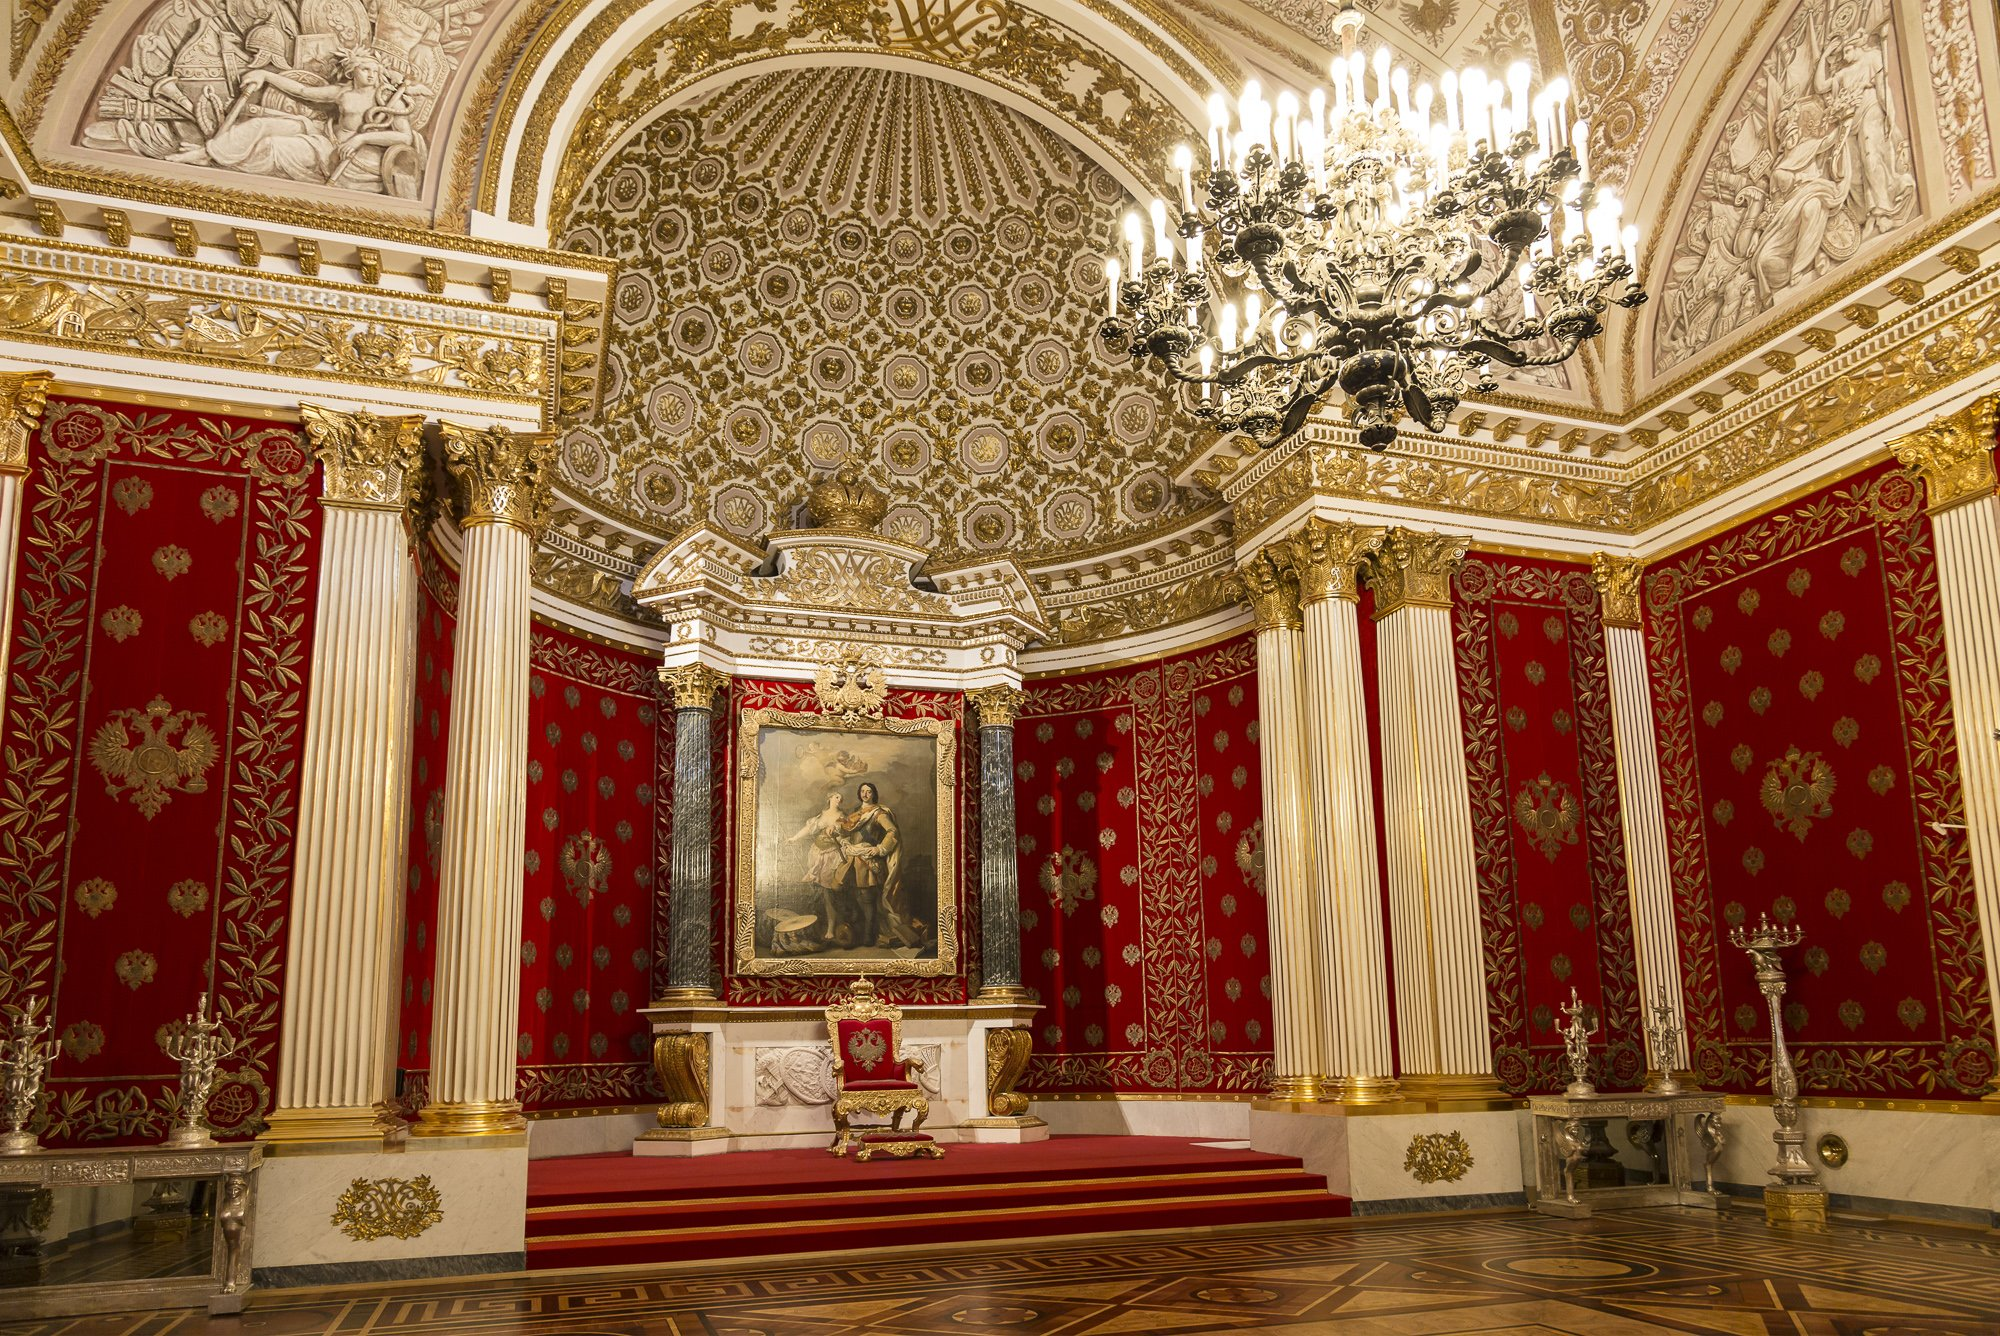 Petrovsky or small throne room in Hermitage, St. Petersburg